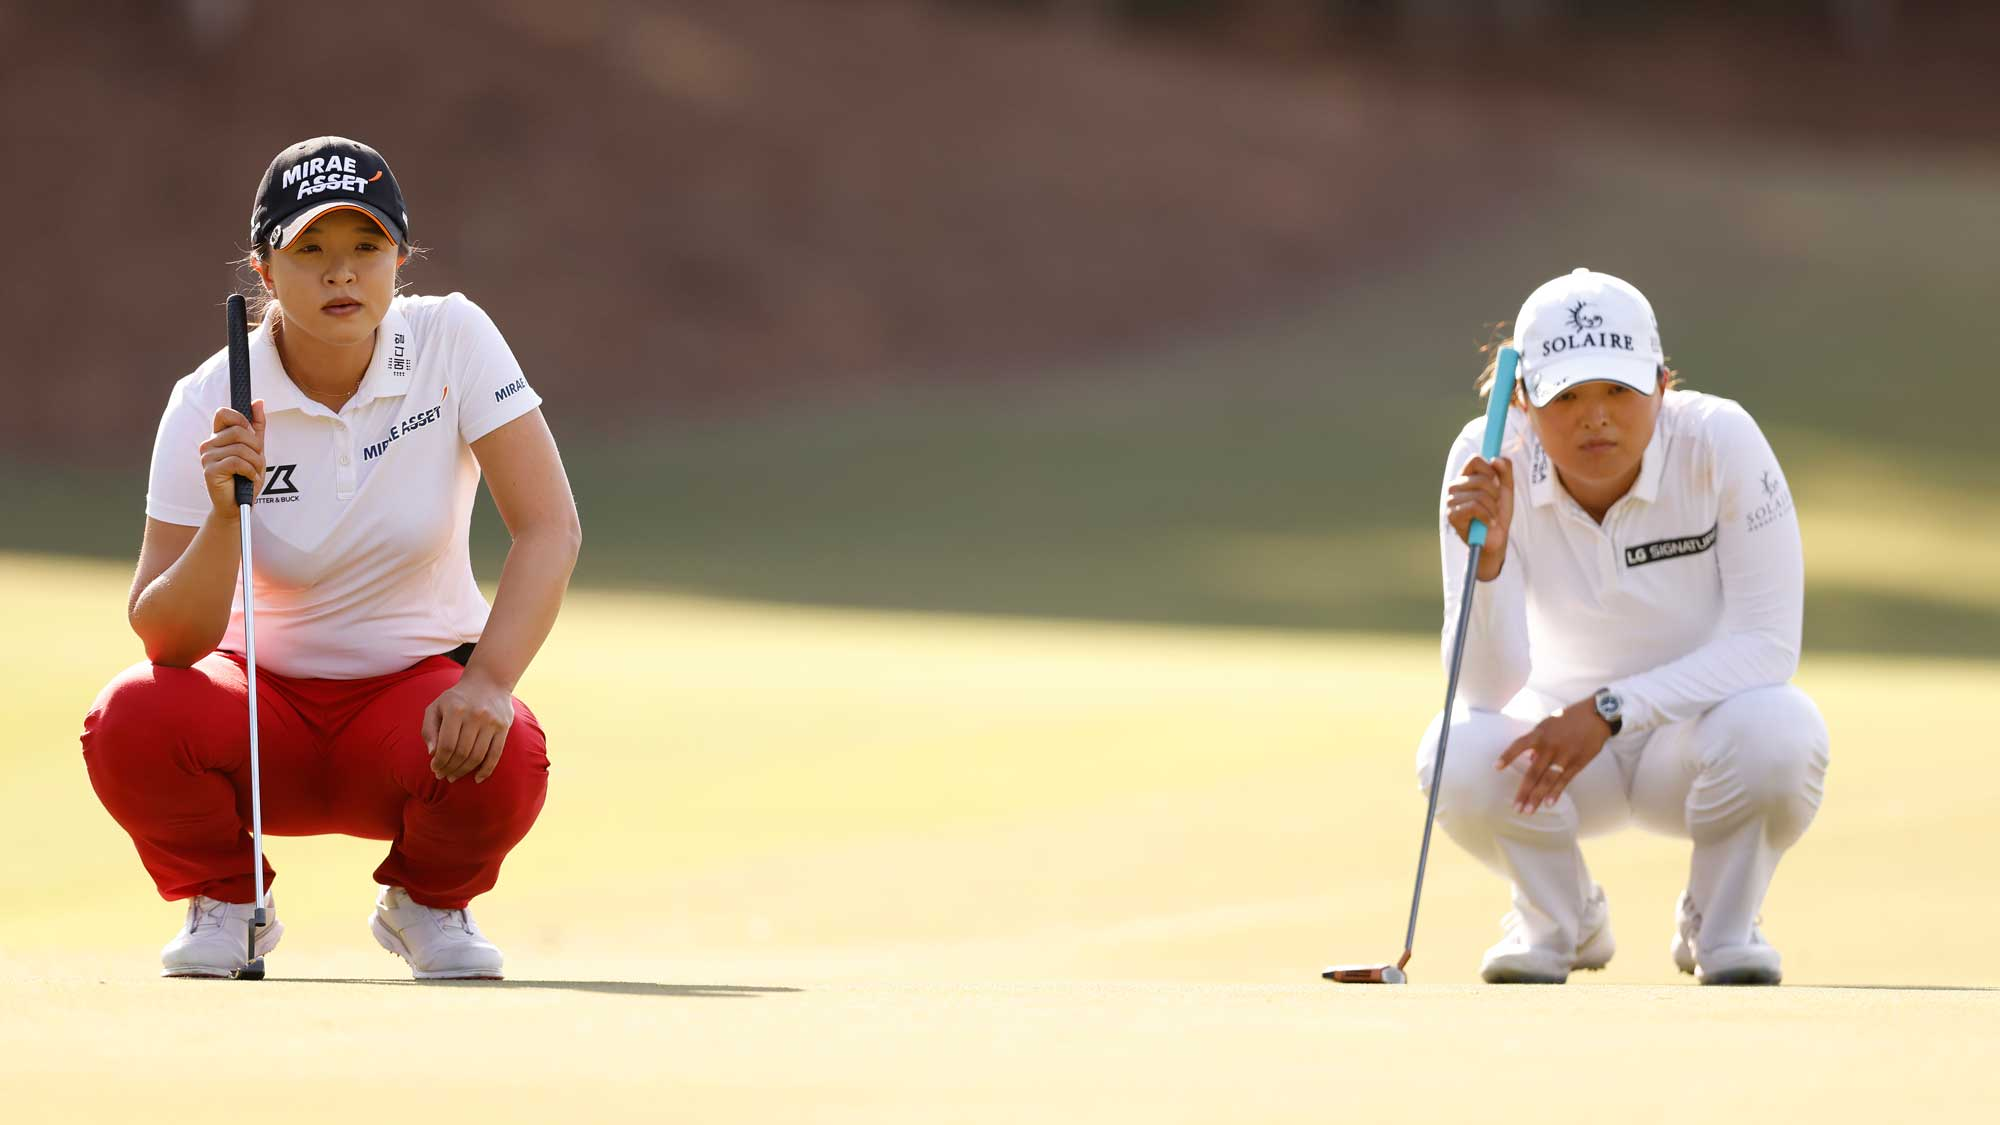 Jin Young Ko of Korea and Sei-Young Kim of Korea look over their putt on the third green during the final round of the CME Group Tour Championship